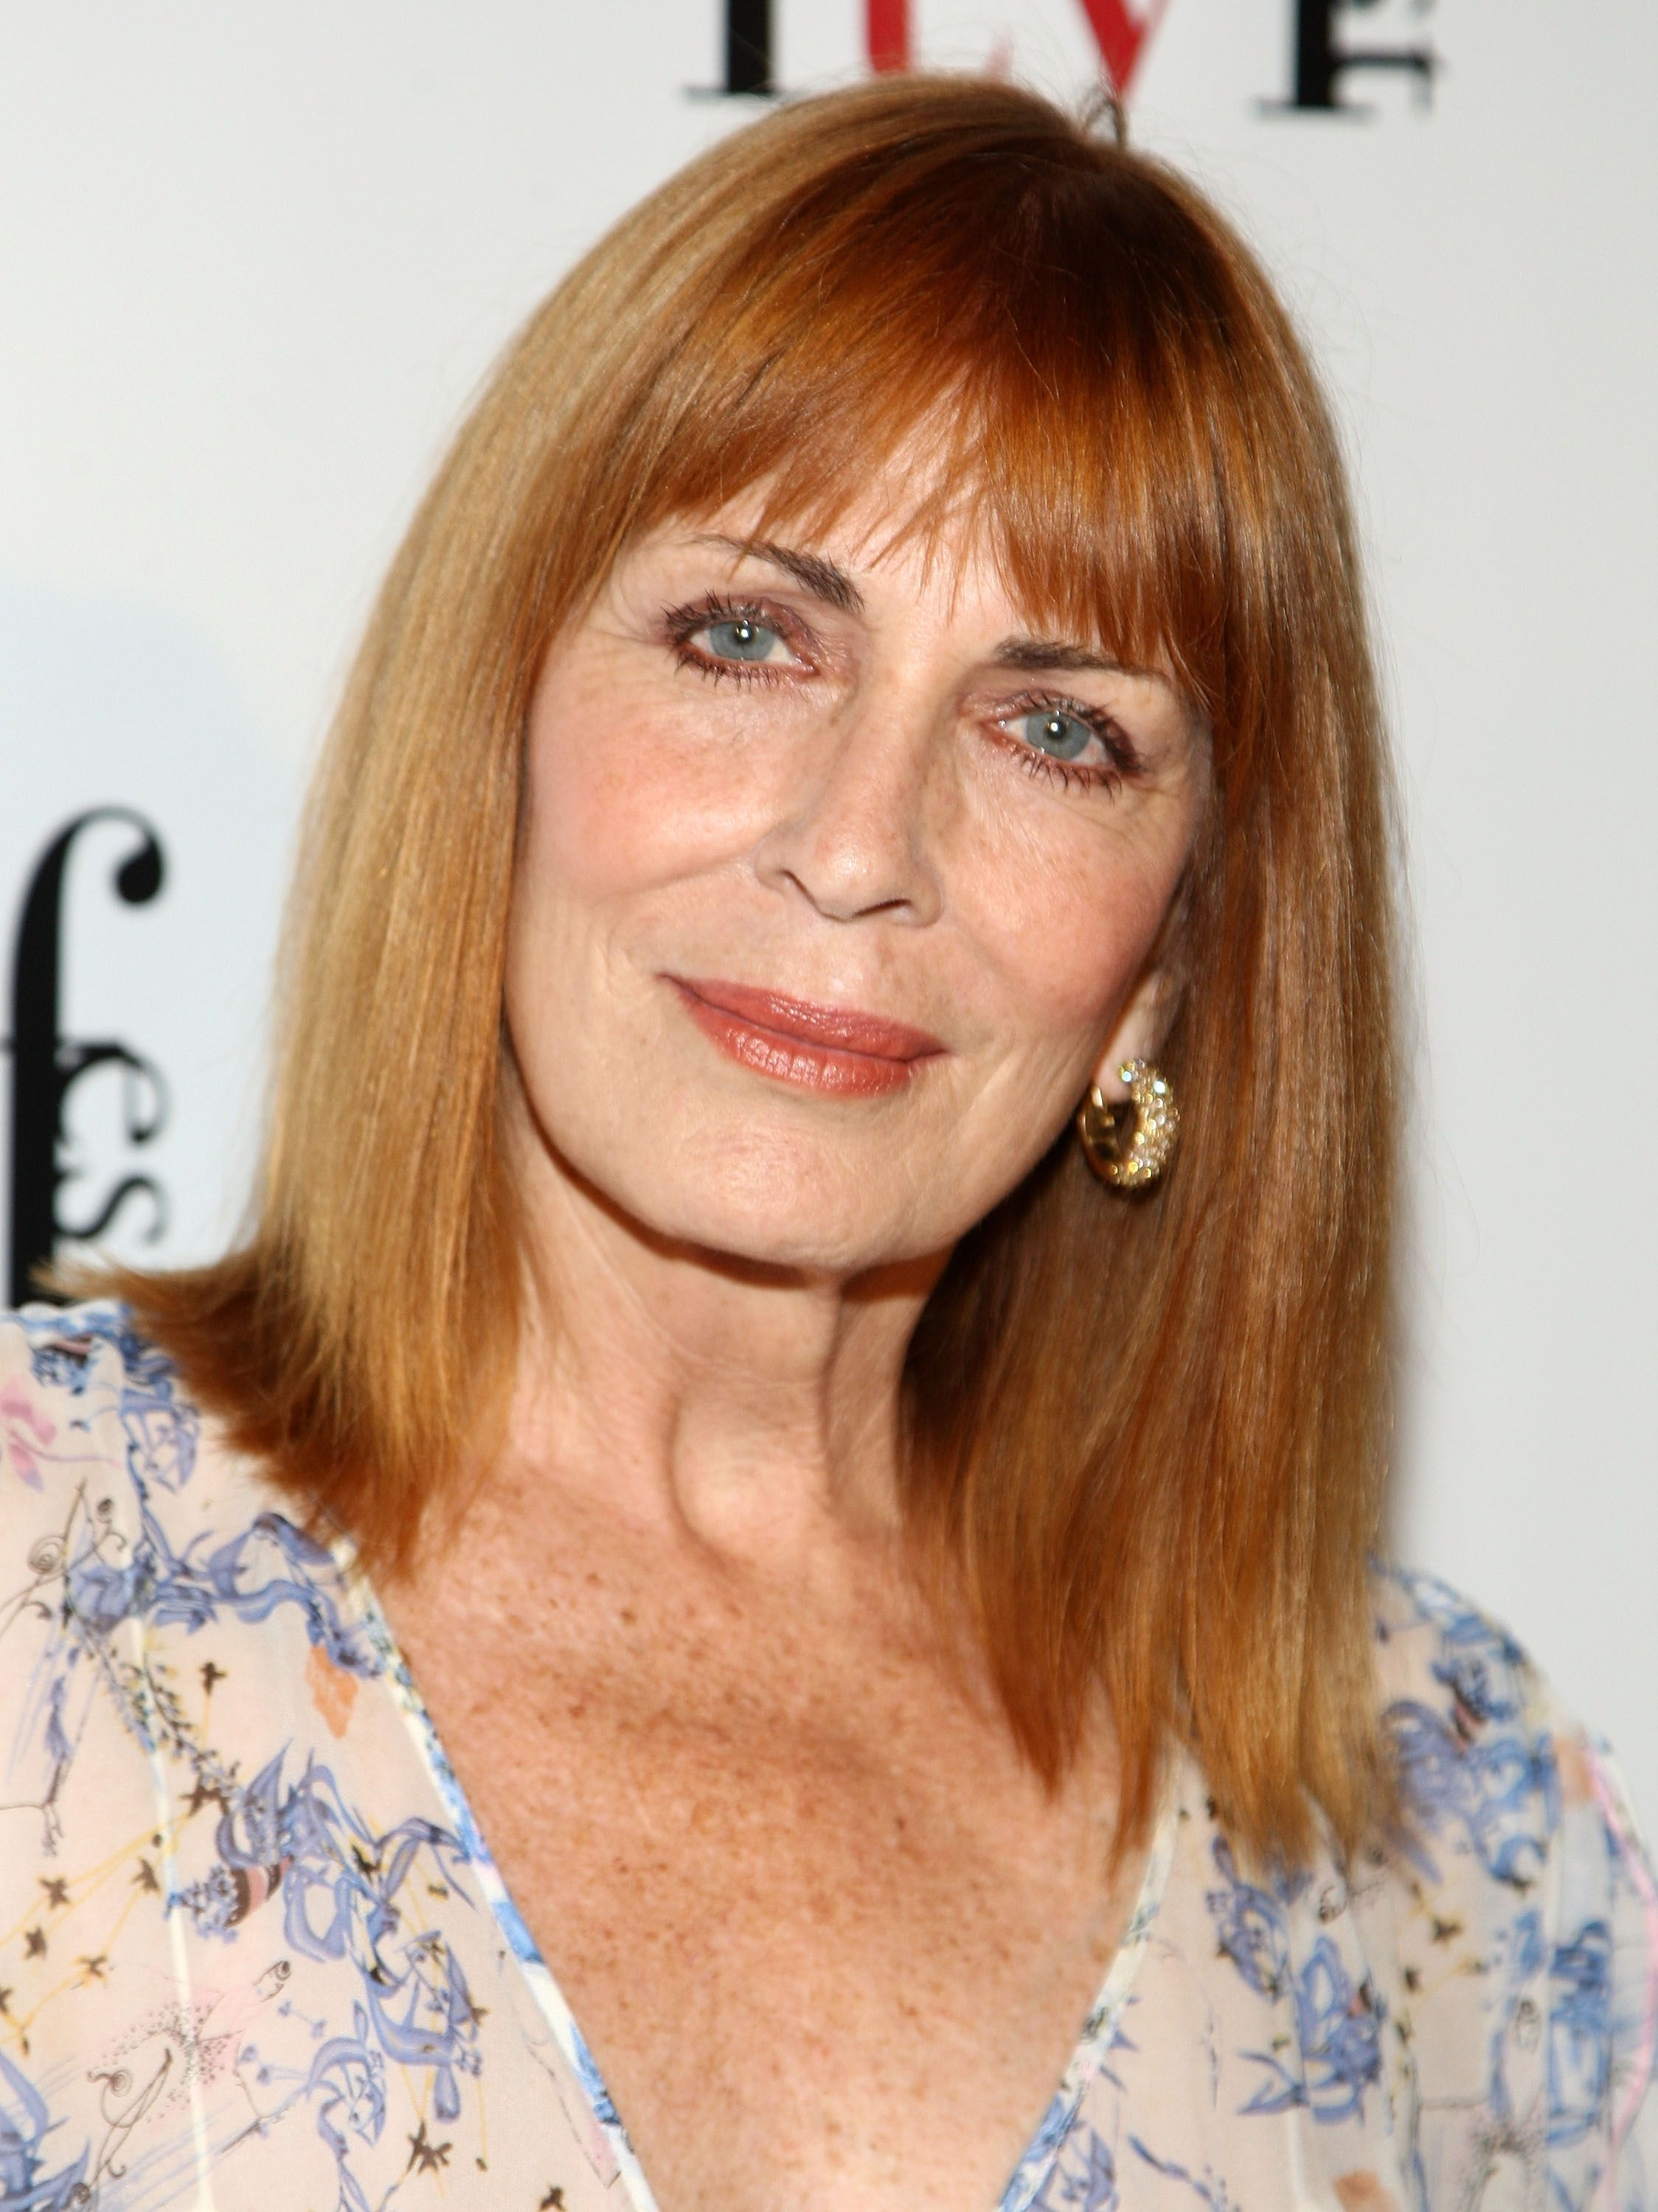 Joanna Cassidy earned a  million dollar salary - leaving the net worth at 4 million in 2018